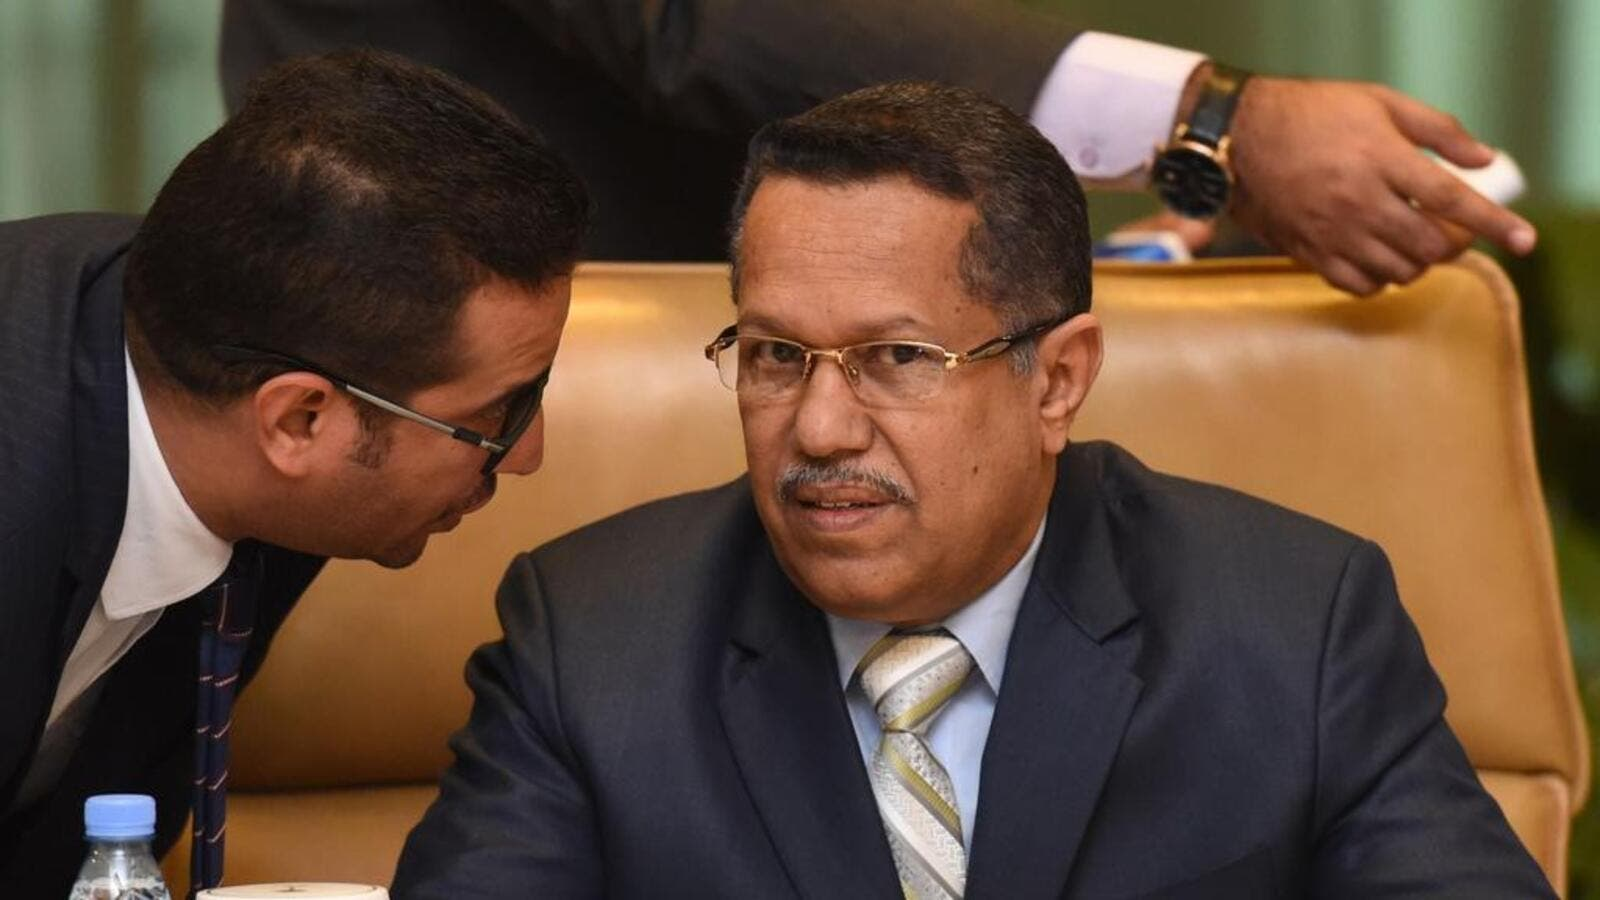 Prime minister Ahmed bin Dagher has claimed victory in war against Houthis in Yemen's western Al-Hudaydah province. (AFP/ File Photo)